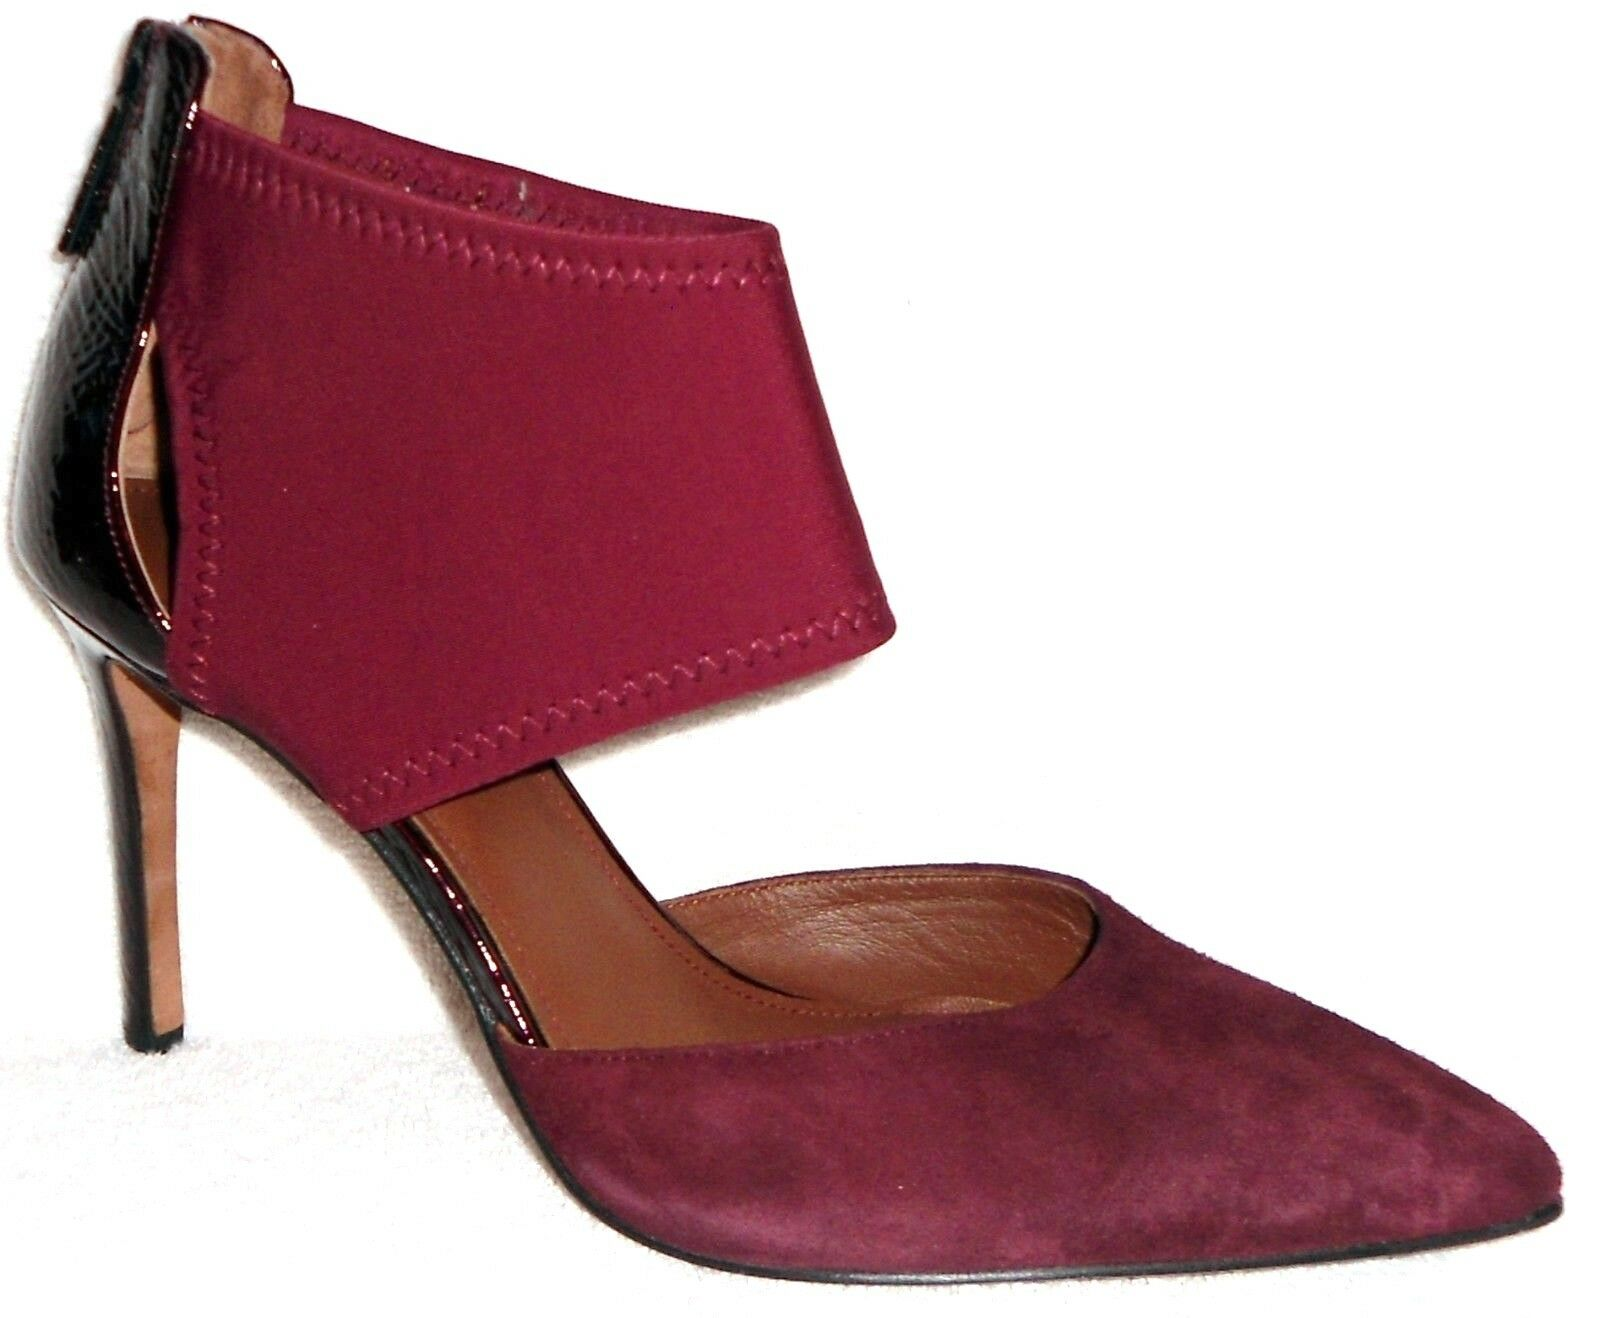 Donald J Pliner Karis Merlot Suede & Stretch Pointy Toe D'Orsey Pumps 10 M